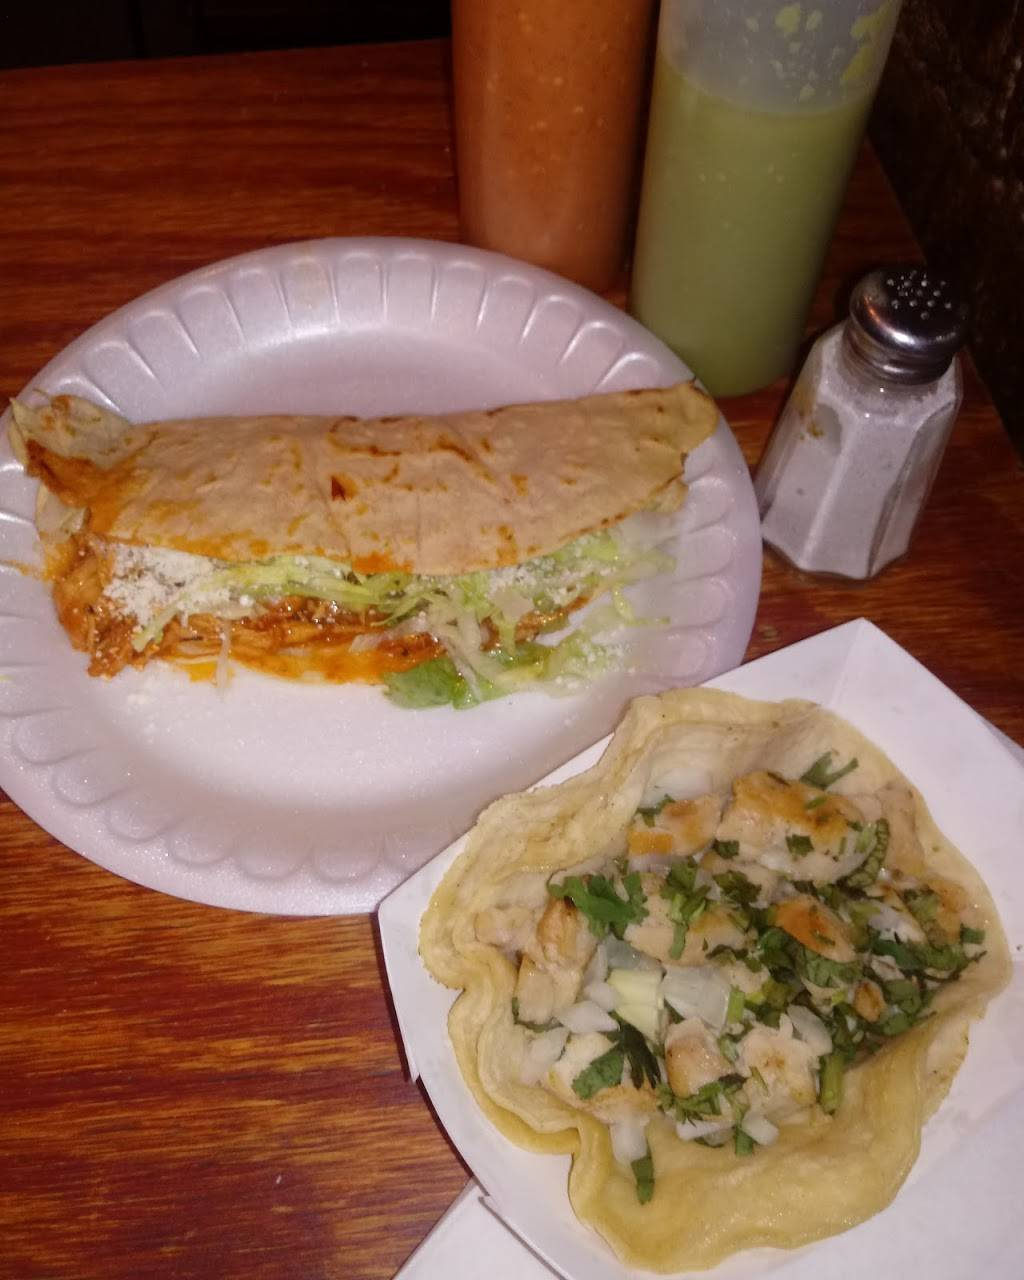 Quesadillas Doña Maty | restaurant | 228 E 116th St, New York, NY 10029, USA | 6467896237 OR +1 646-789-6237